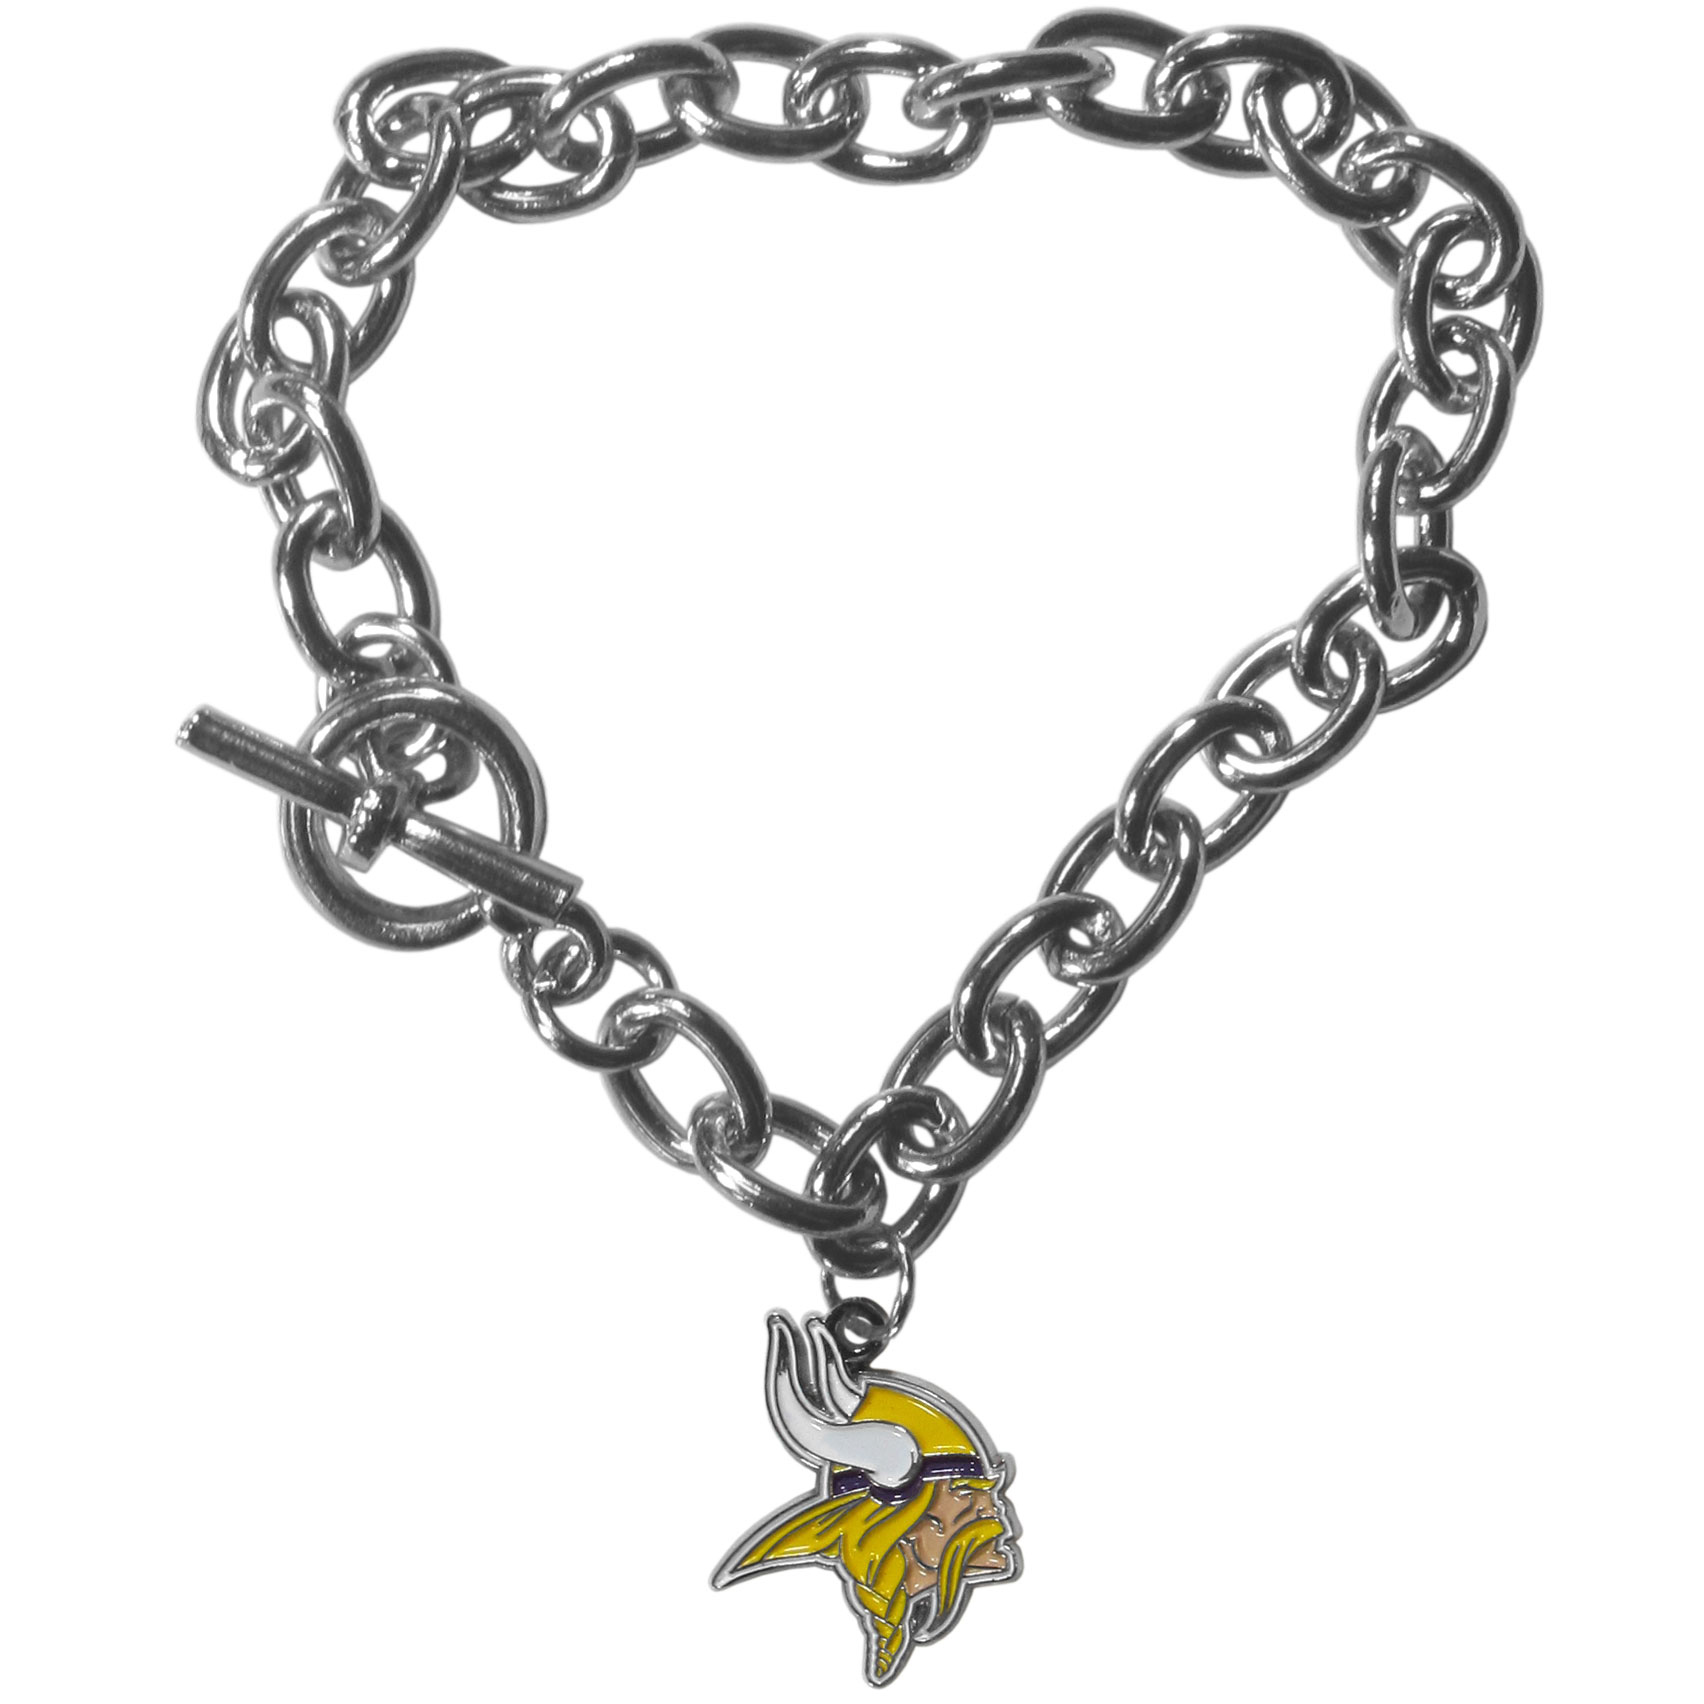 Minnesota Vikings Charm Chain Bracelets - Our classic single charm bracelet is a great way to show off your team pride! The 7.5 inch large link chain features a high polish Minnesota Vikings charm and features a toggle clasp which makes it super easy to take on and off. Officially licensed NFL product Licensee: Siskiyou Buckle Thank you for visiting CrazedOutSports.com